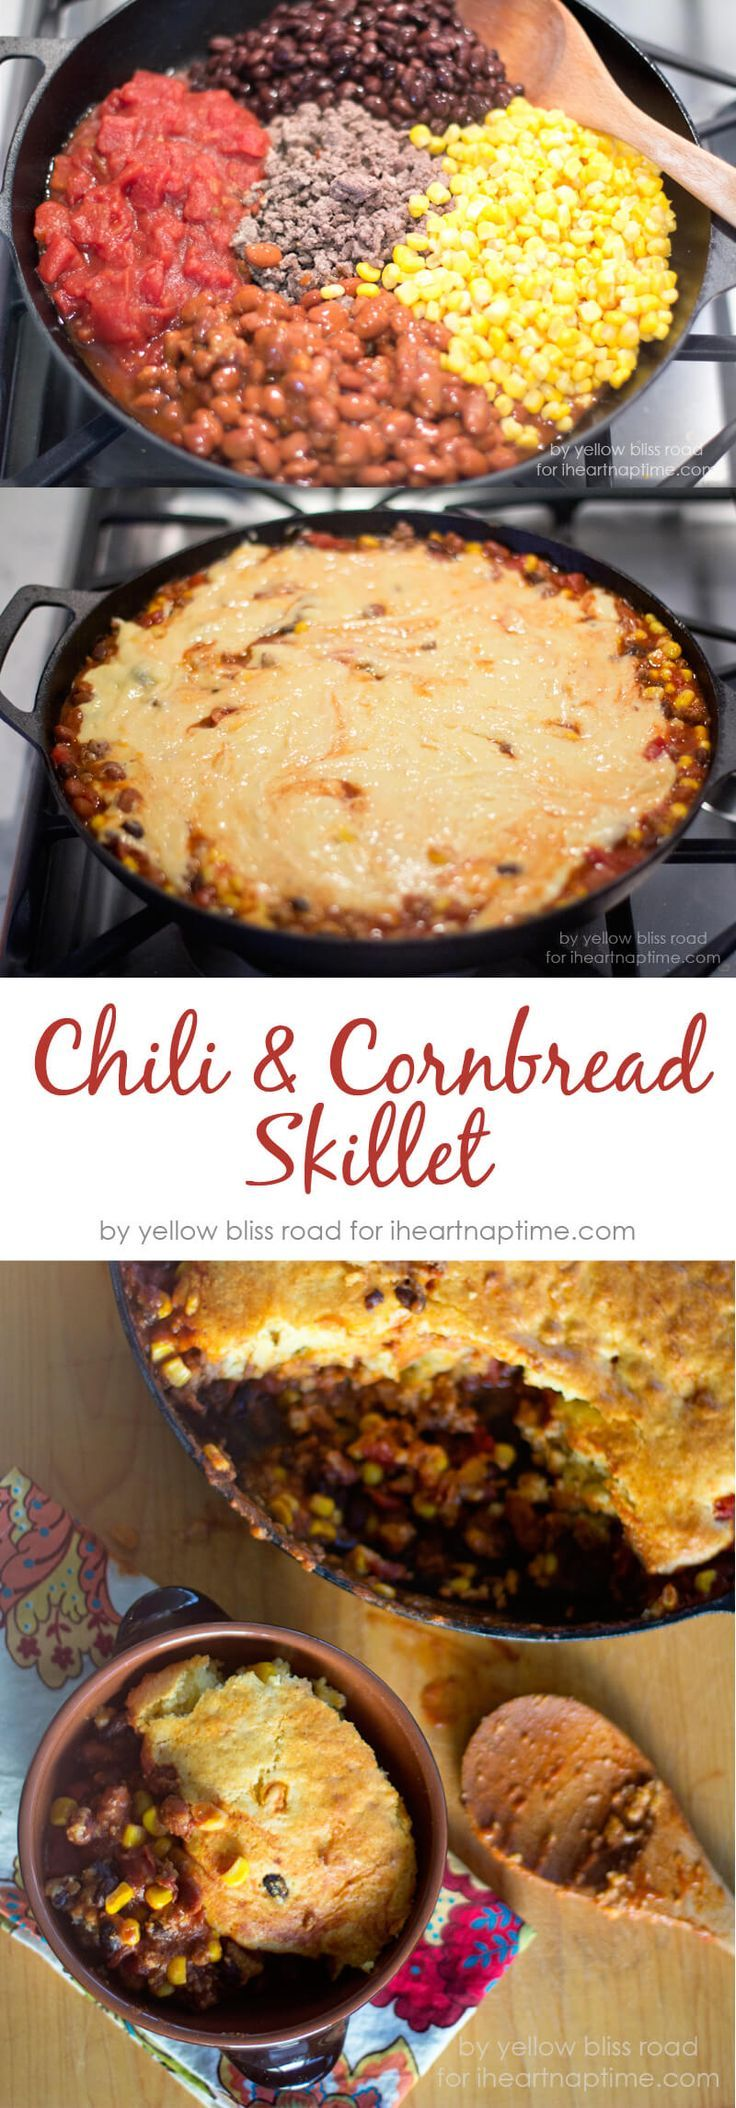 Chili and Cornbread #fallrecipesdinner